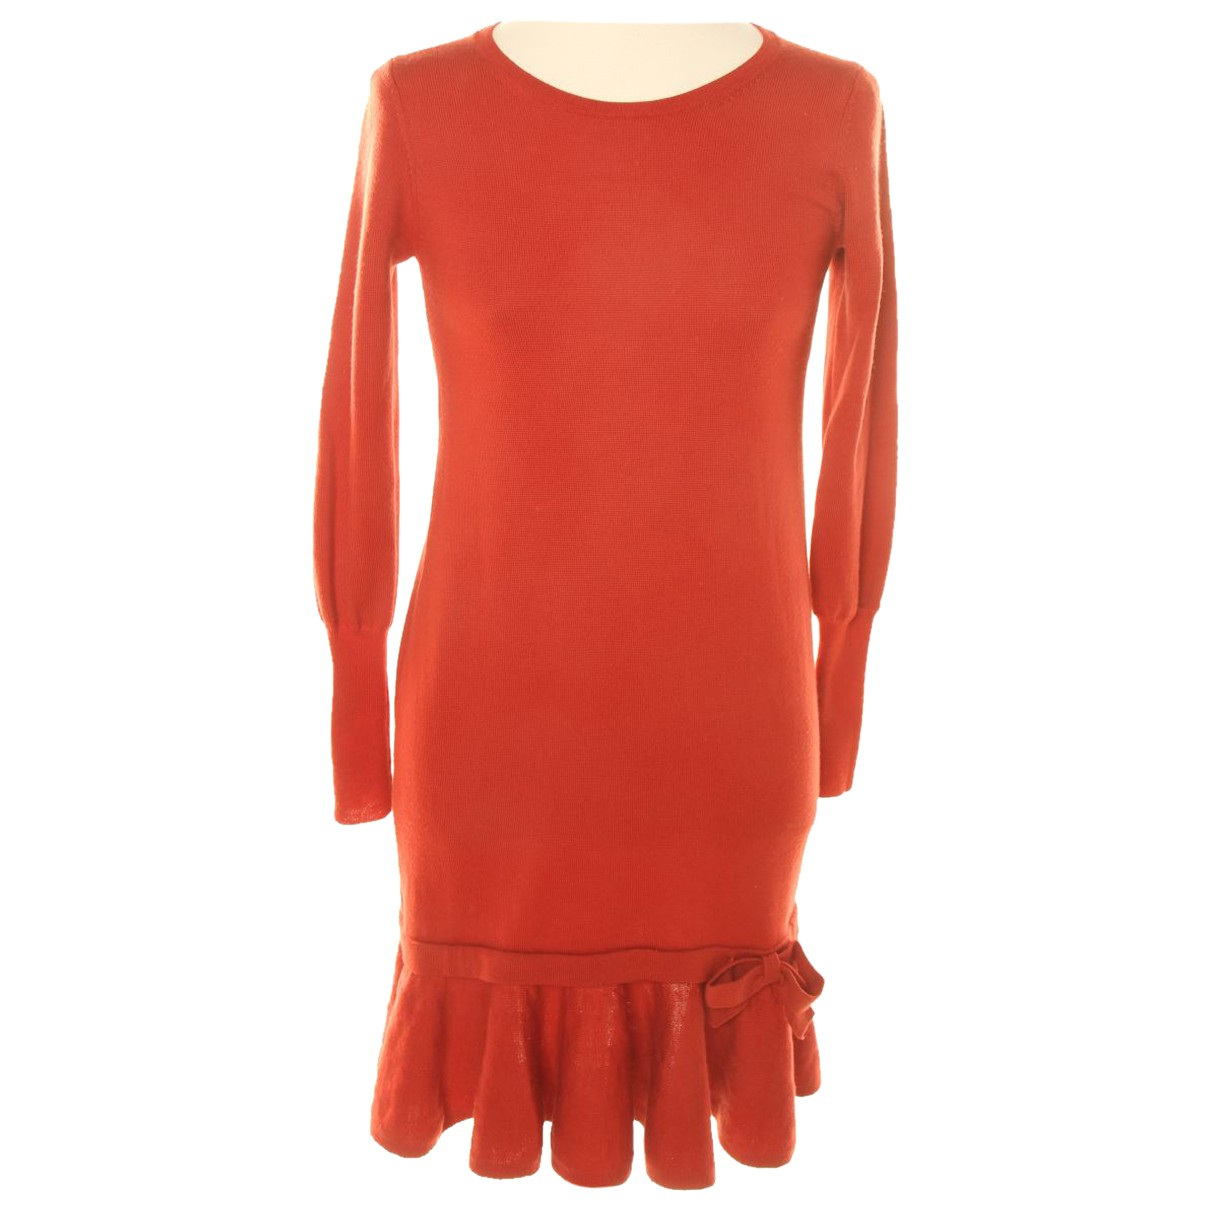 Paule Ka N Red Cotton dress for Women S International